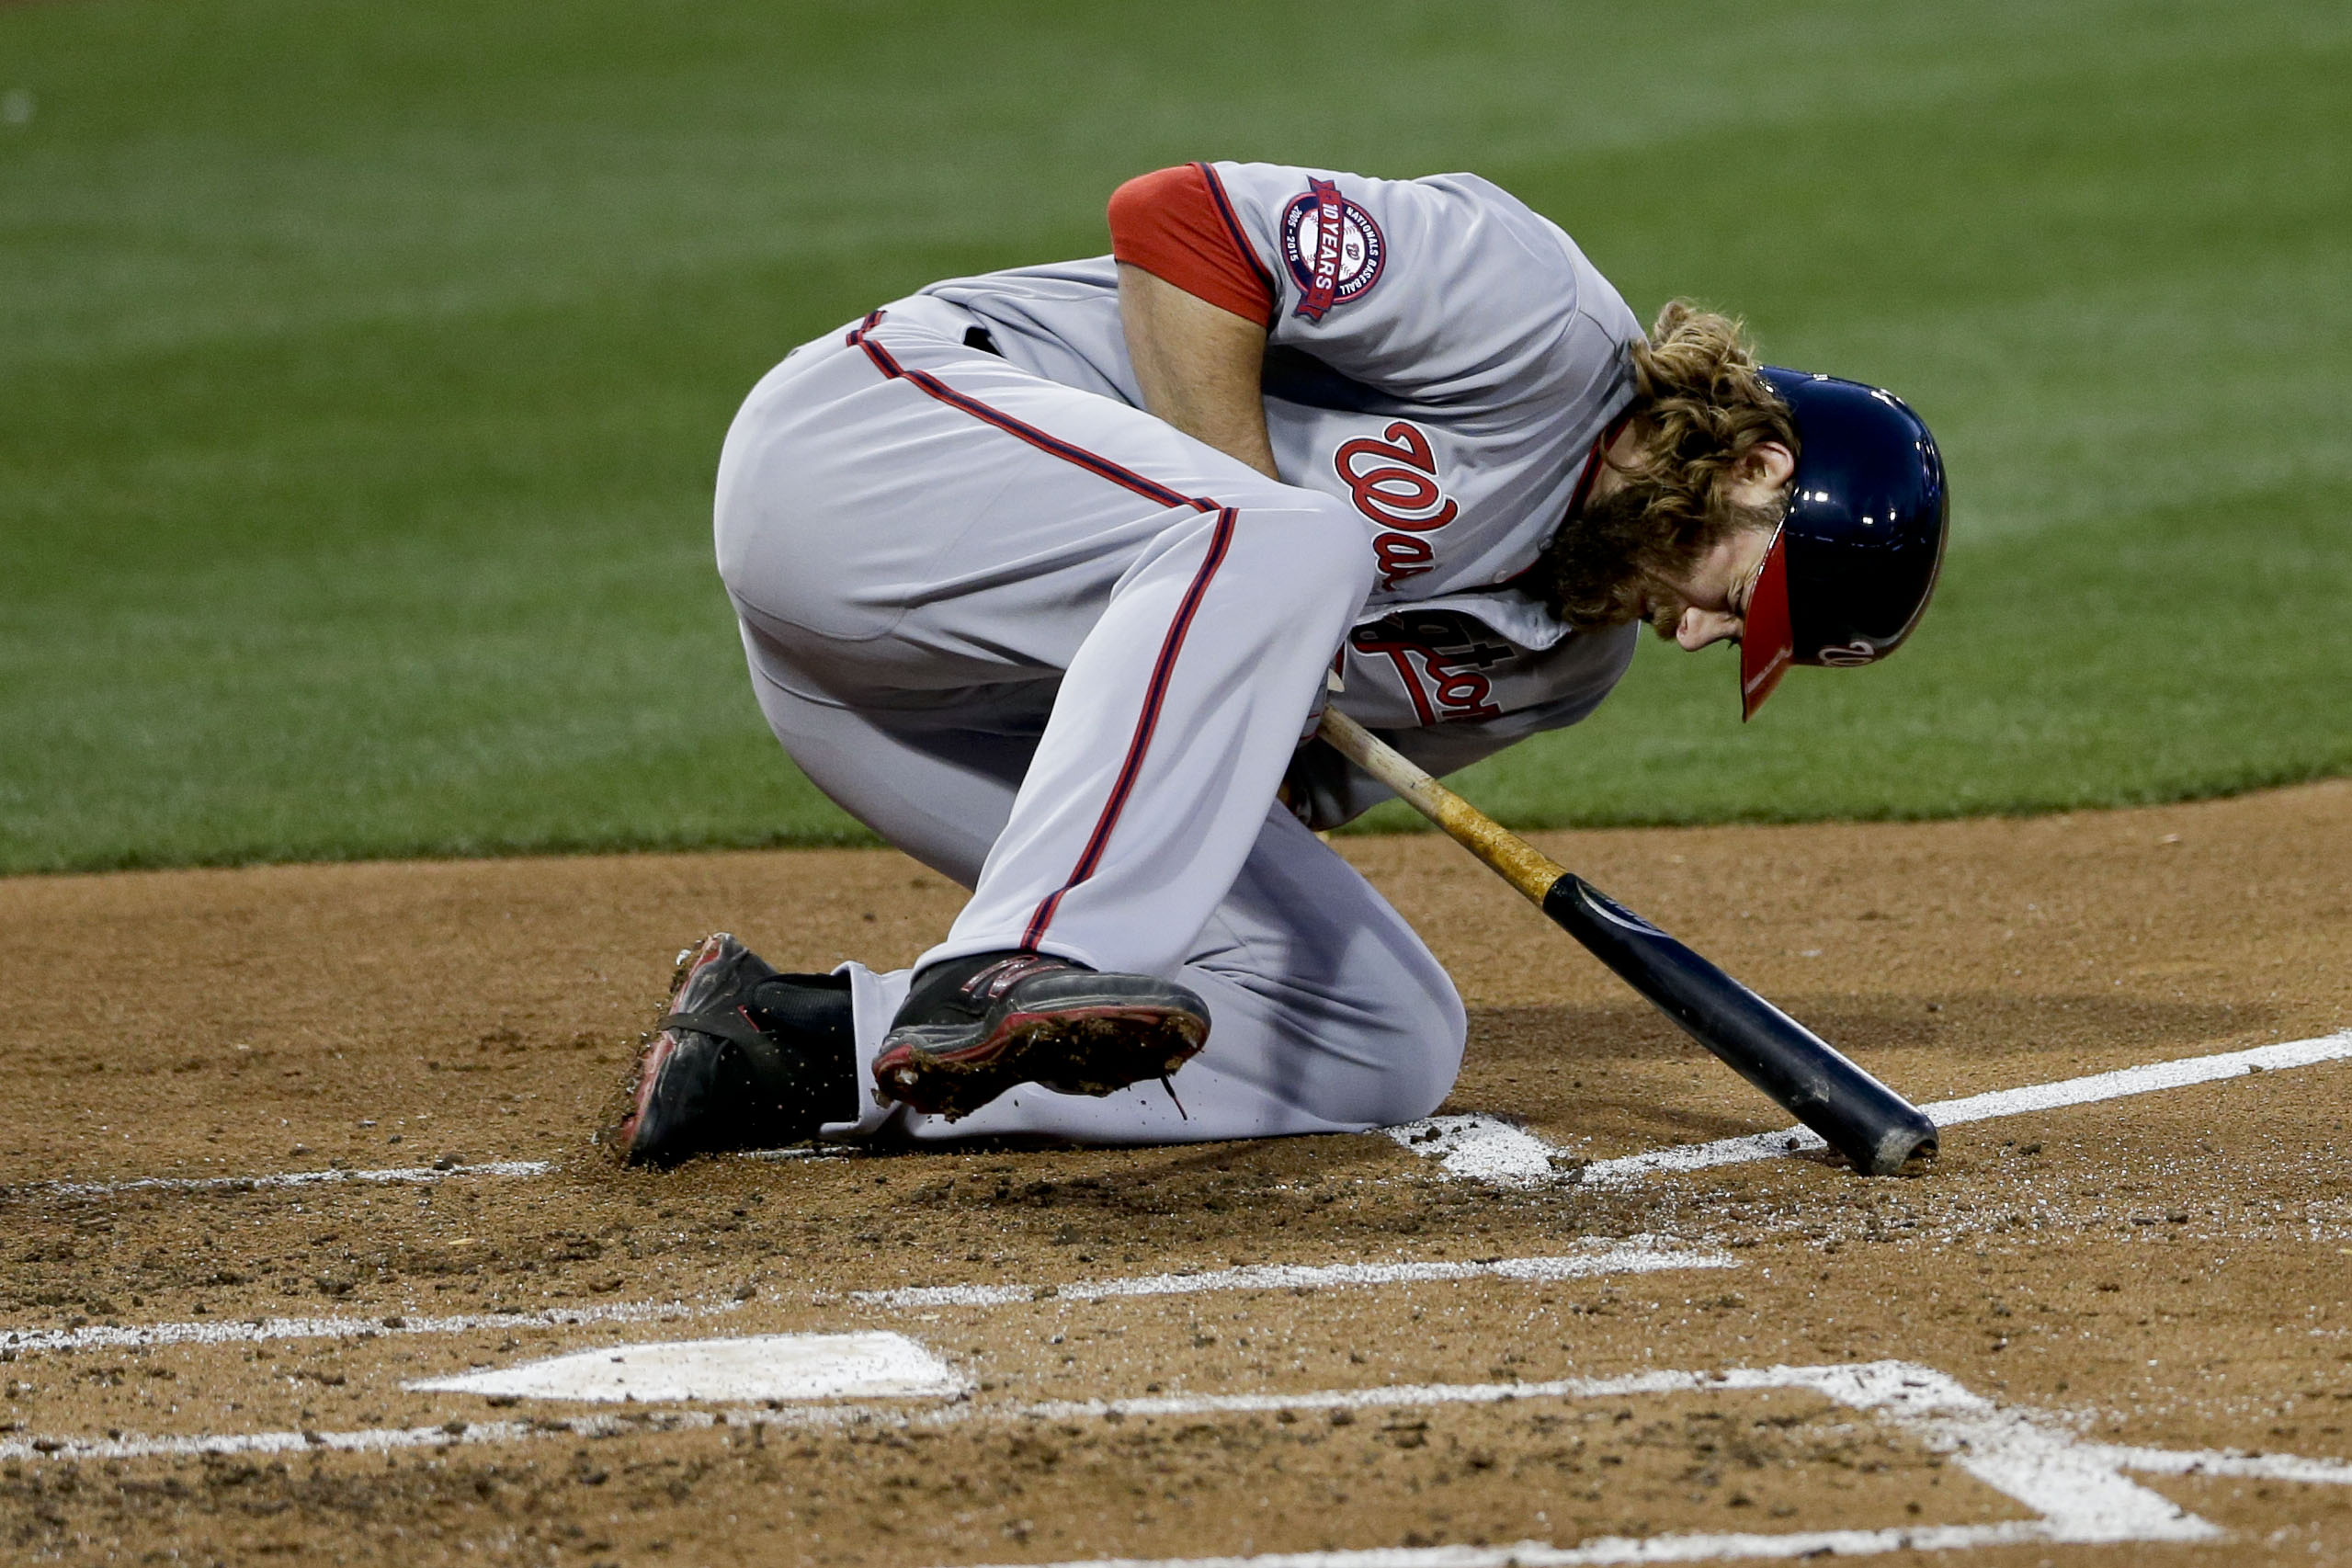 Washington Nationals' Jayson Werth falls after being hit by a pitch while playing the San Diego Padres during the second inning in a baseball game Friday, May 15, 2015, in San Diego. (AP Photo/Gregory Bull)